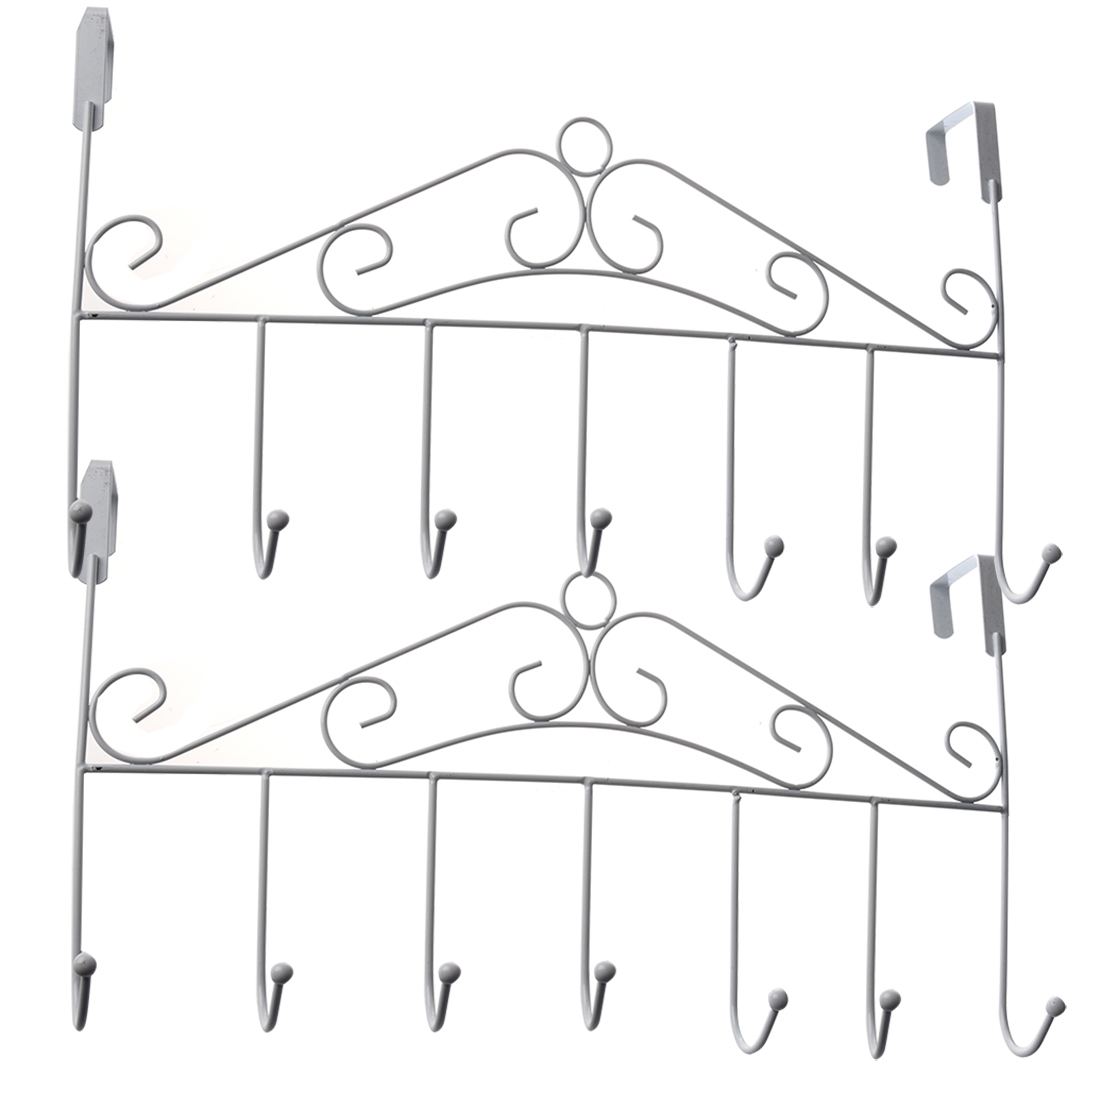 5 Hanger White Towel Hat Coat Clothes Wall Hook Over Door Bathroom In Hooks Amp Rails From Home